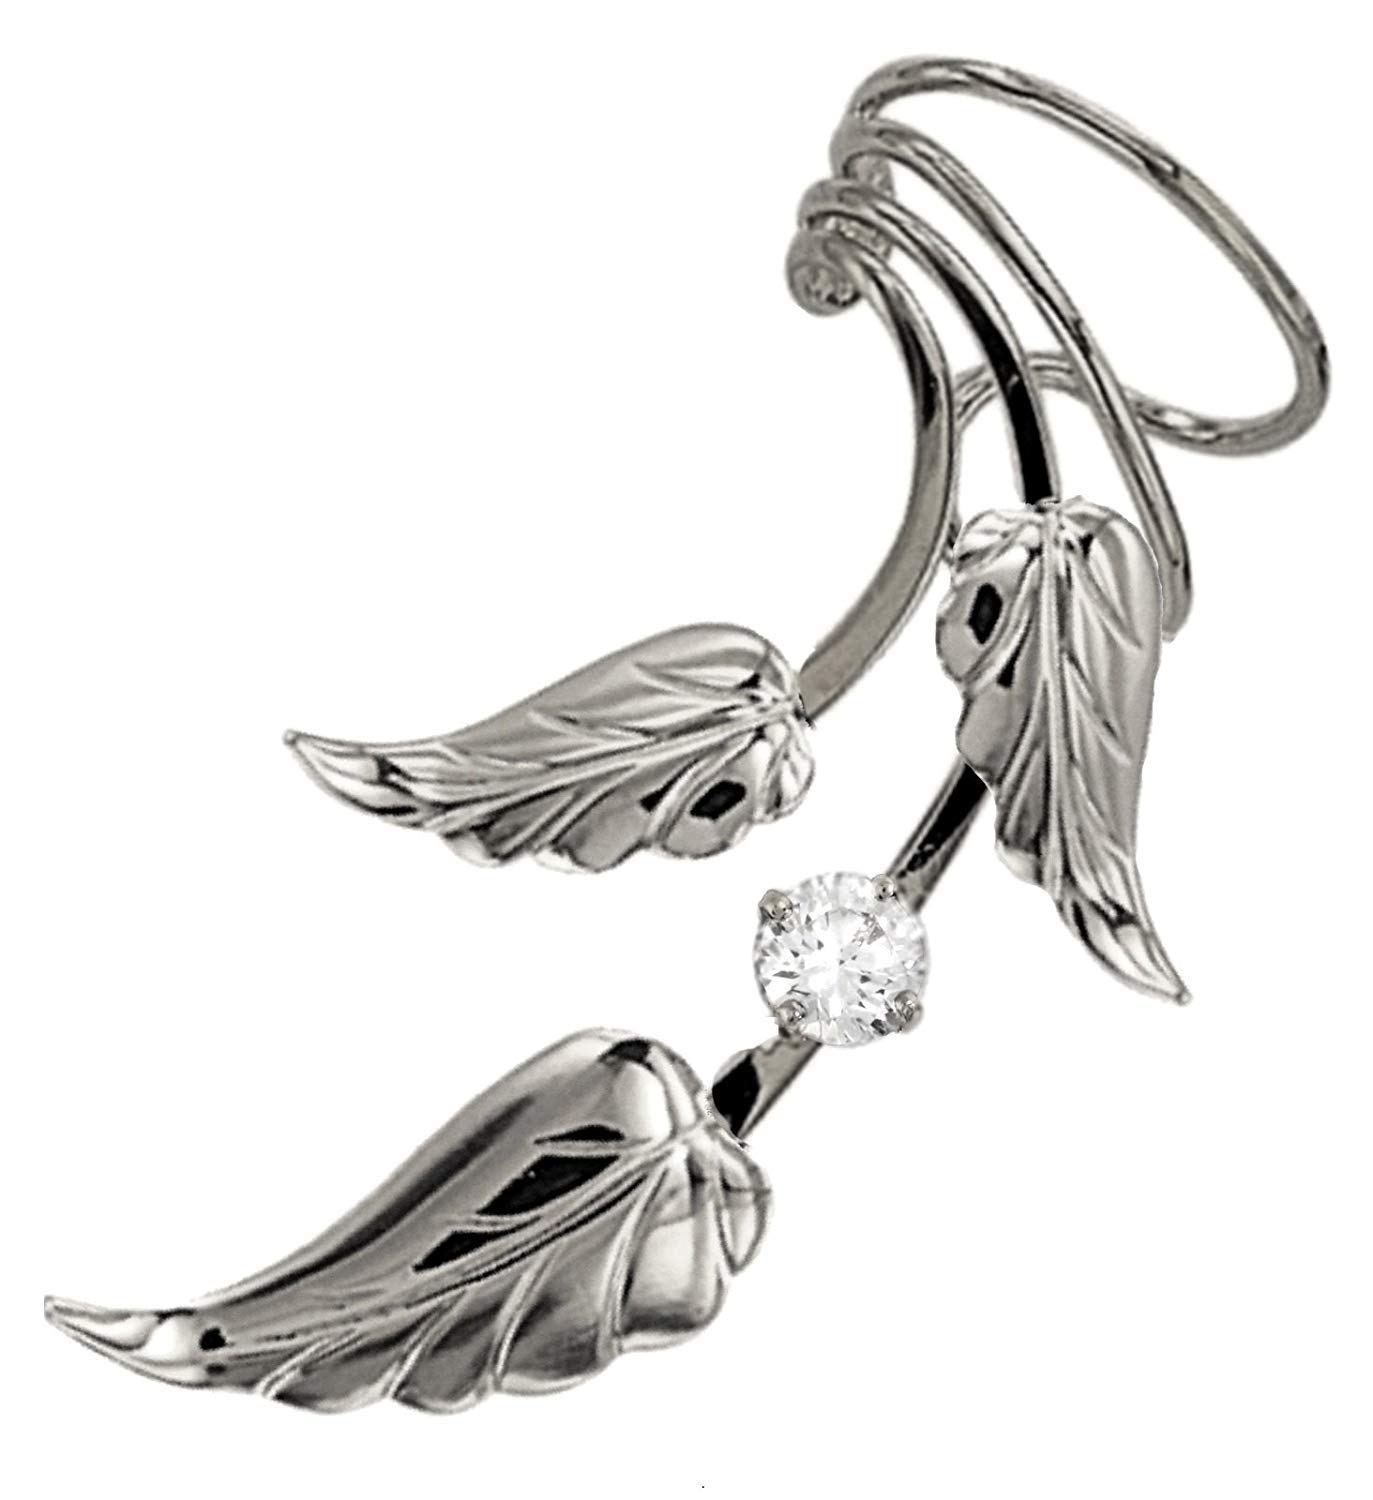 Ear Charms Delicate Leaf and Flower Long Wave Ear Cuff Non Pierced Earring Wrap Single Right EZ Care Rhodium on Silver